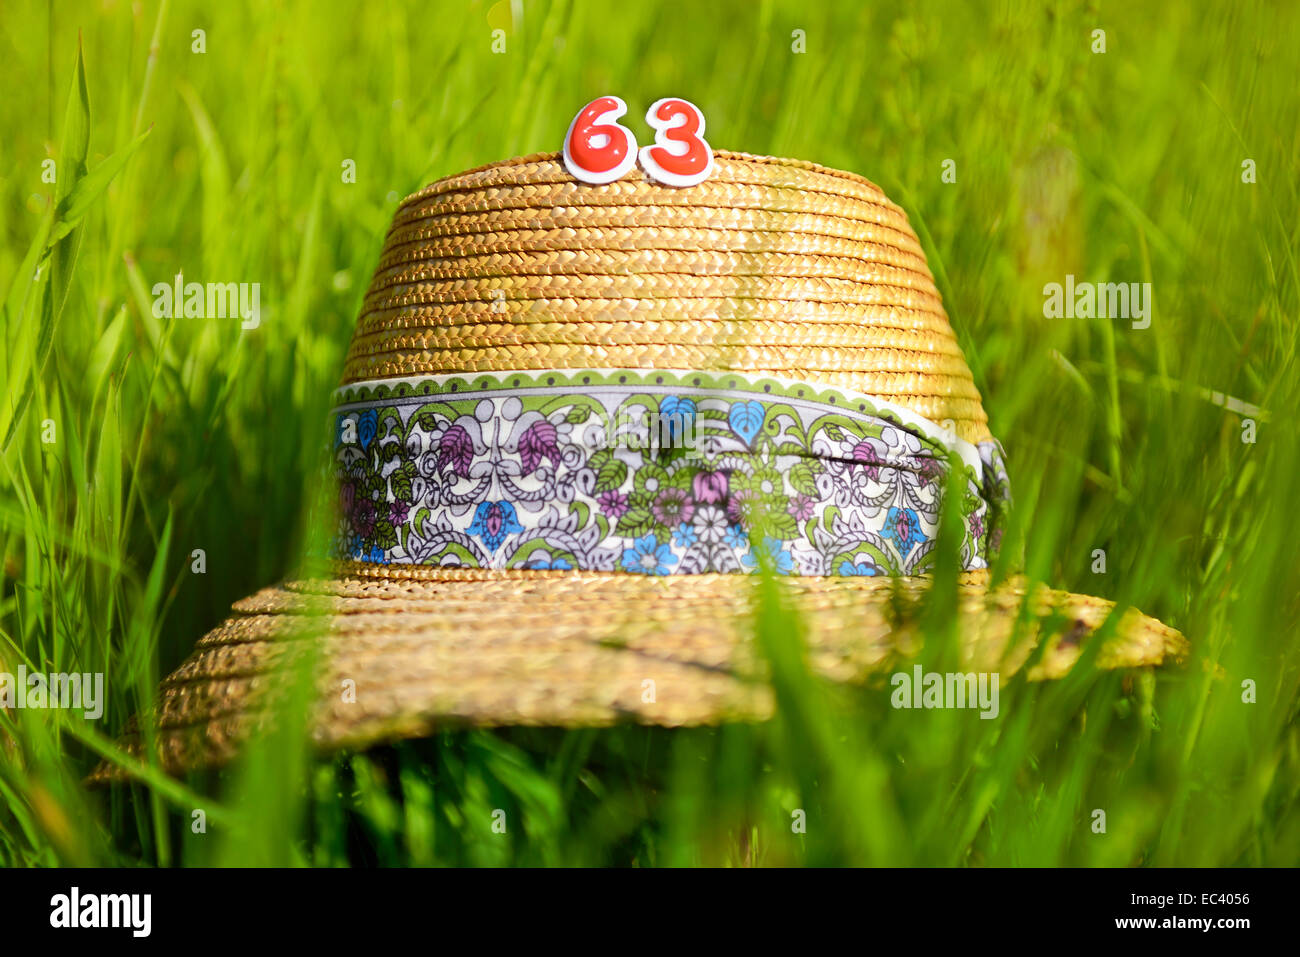 Sun hat and number 63, pension at age 63 - Stock Image